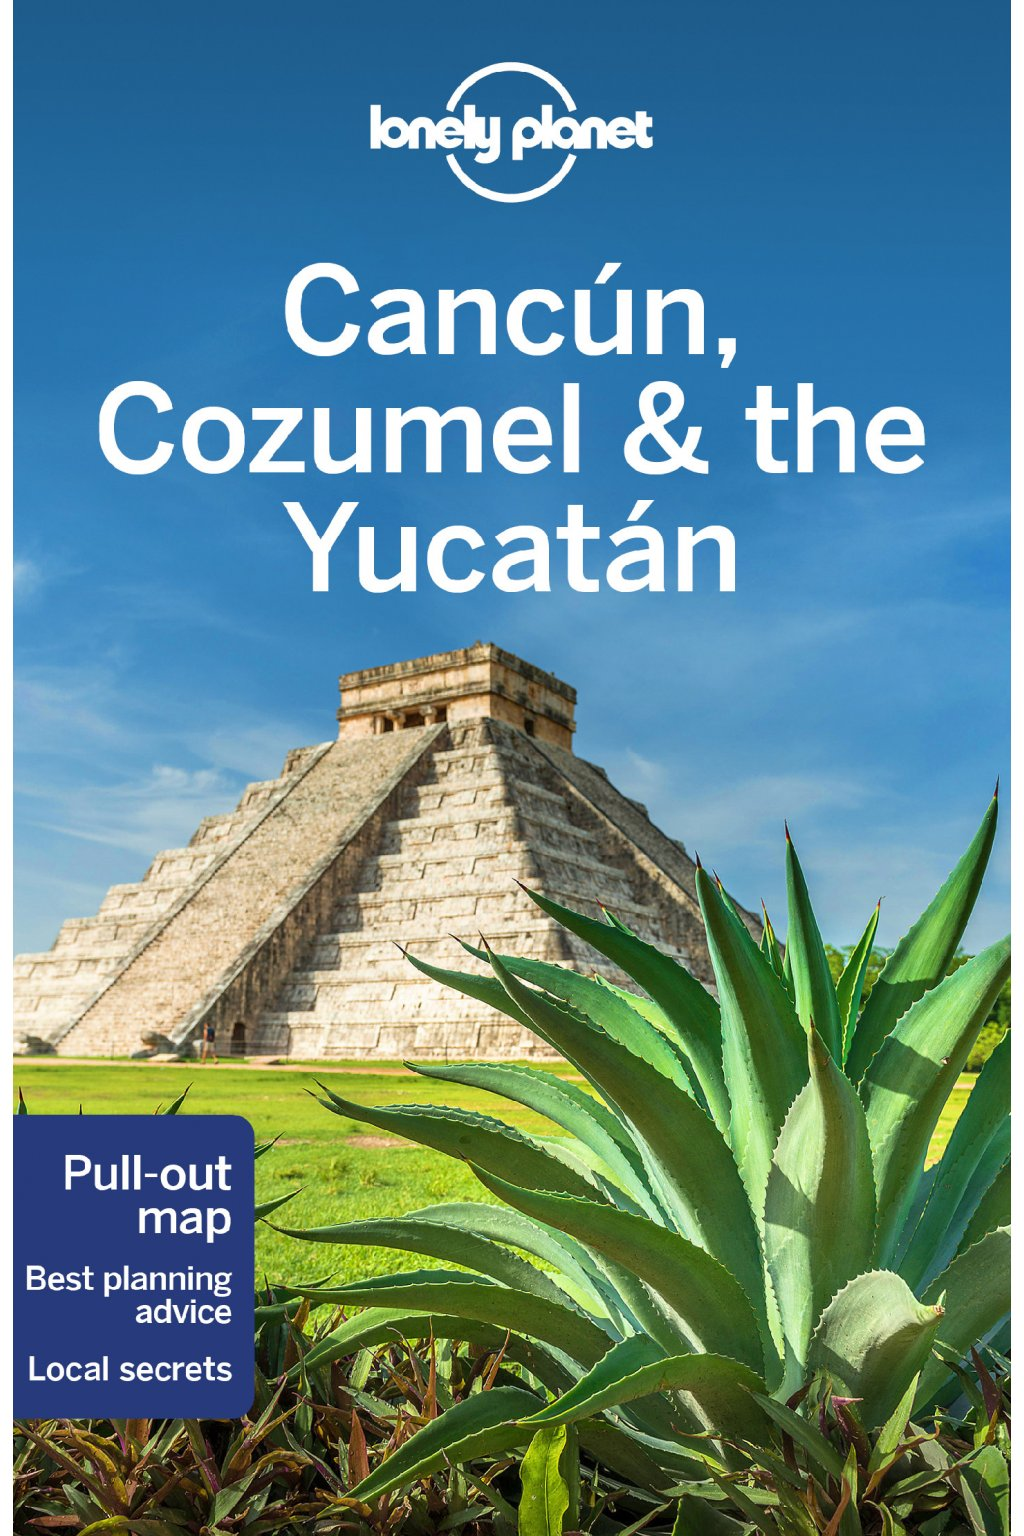 55498 Cancun, Cozumel the Yucatan 8 9781786574879